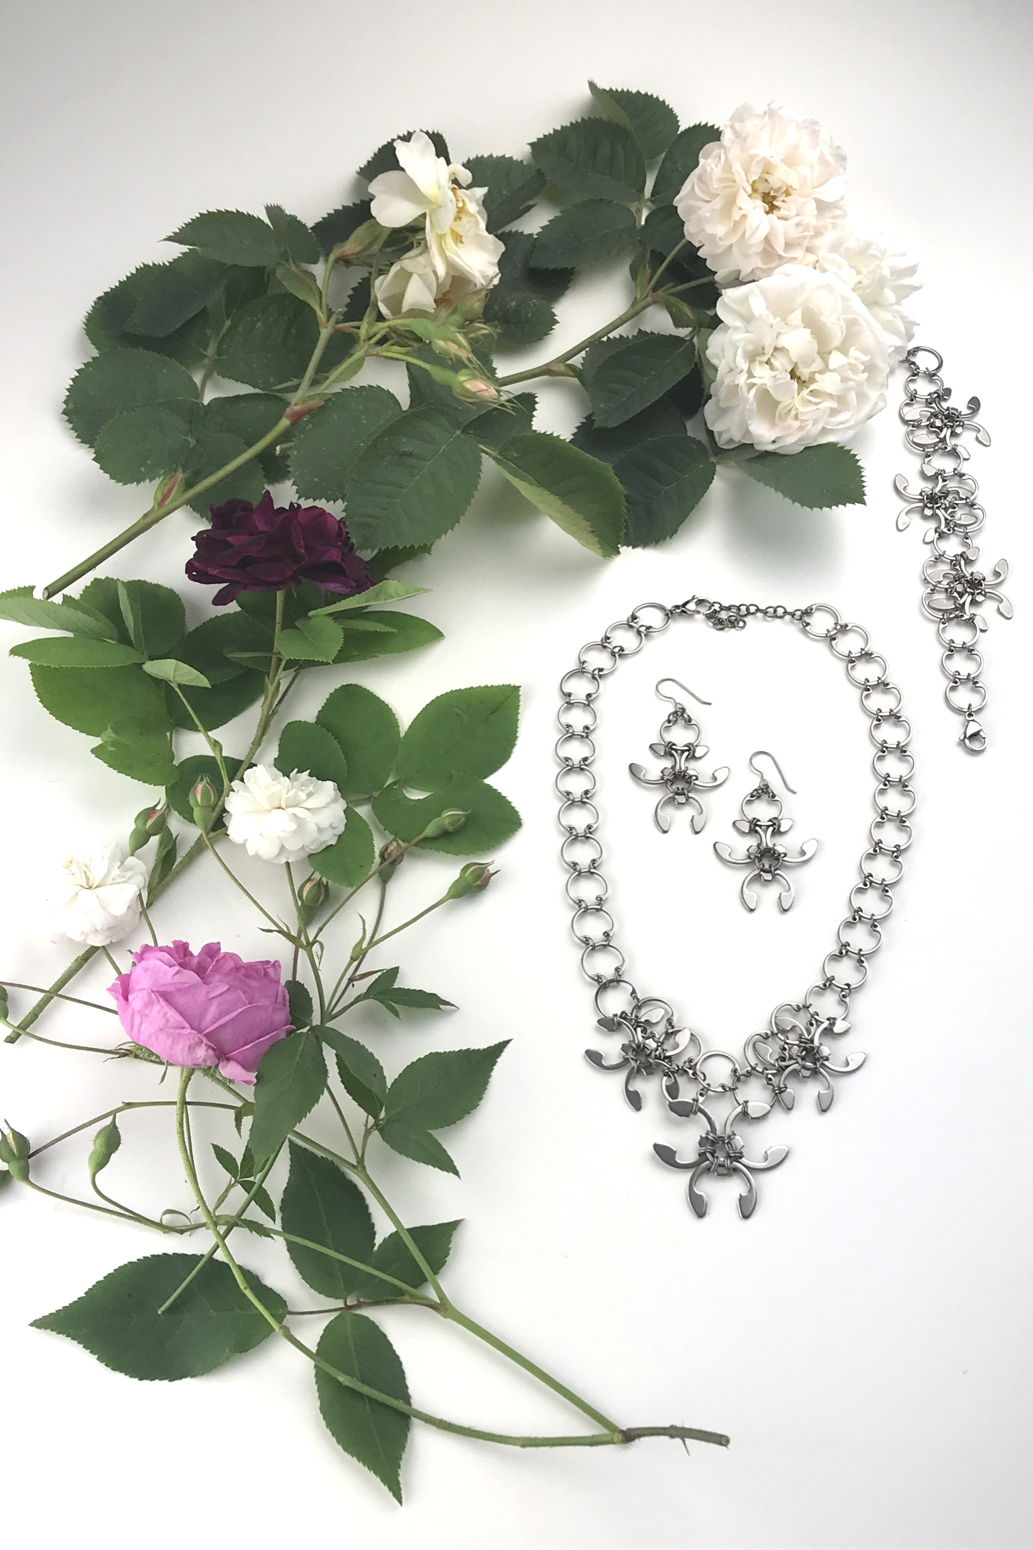 Flatlay of old roses (Rosa alba, Rosa gallica officinalis, moss rose 'Capitaine John Ingram', & 'Felicite et Perpetue') with the Garland Necklace, Garland Earrings, and Garland Bracelet in Wraptillion's studio.